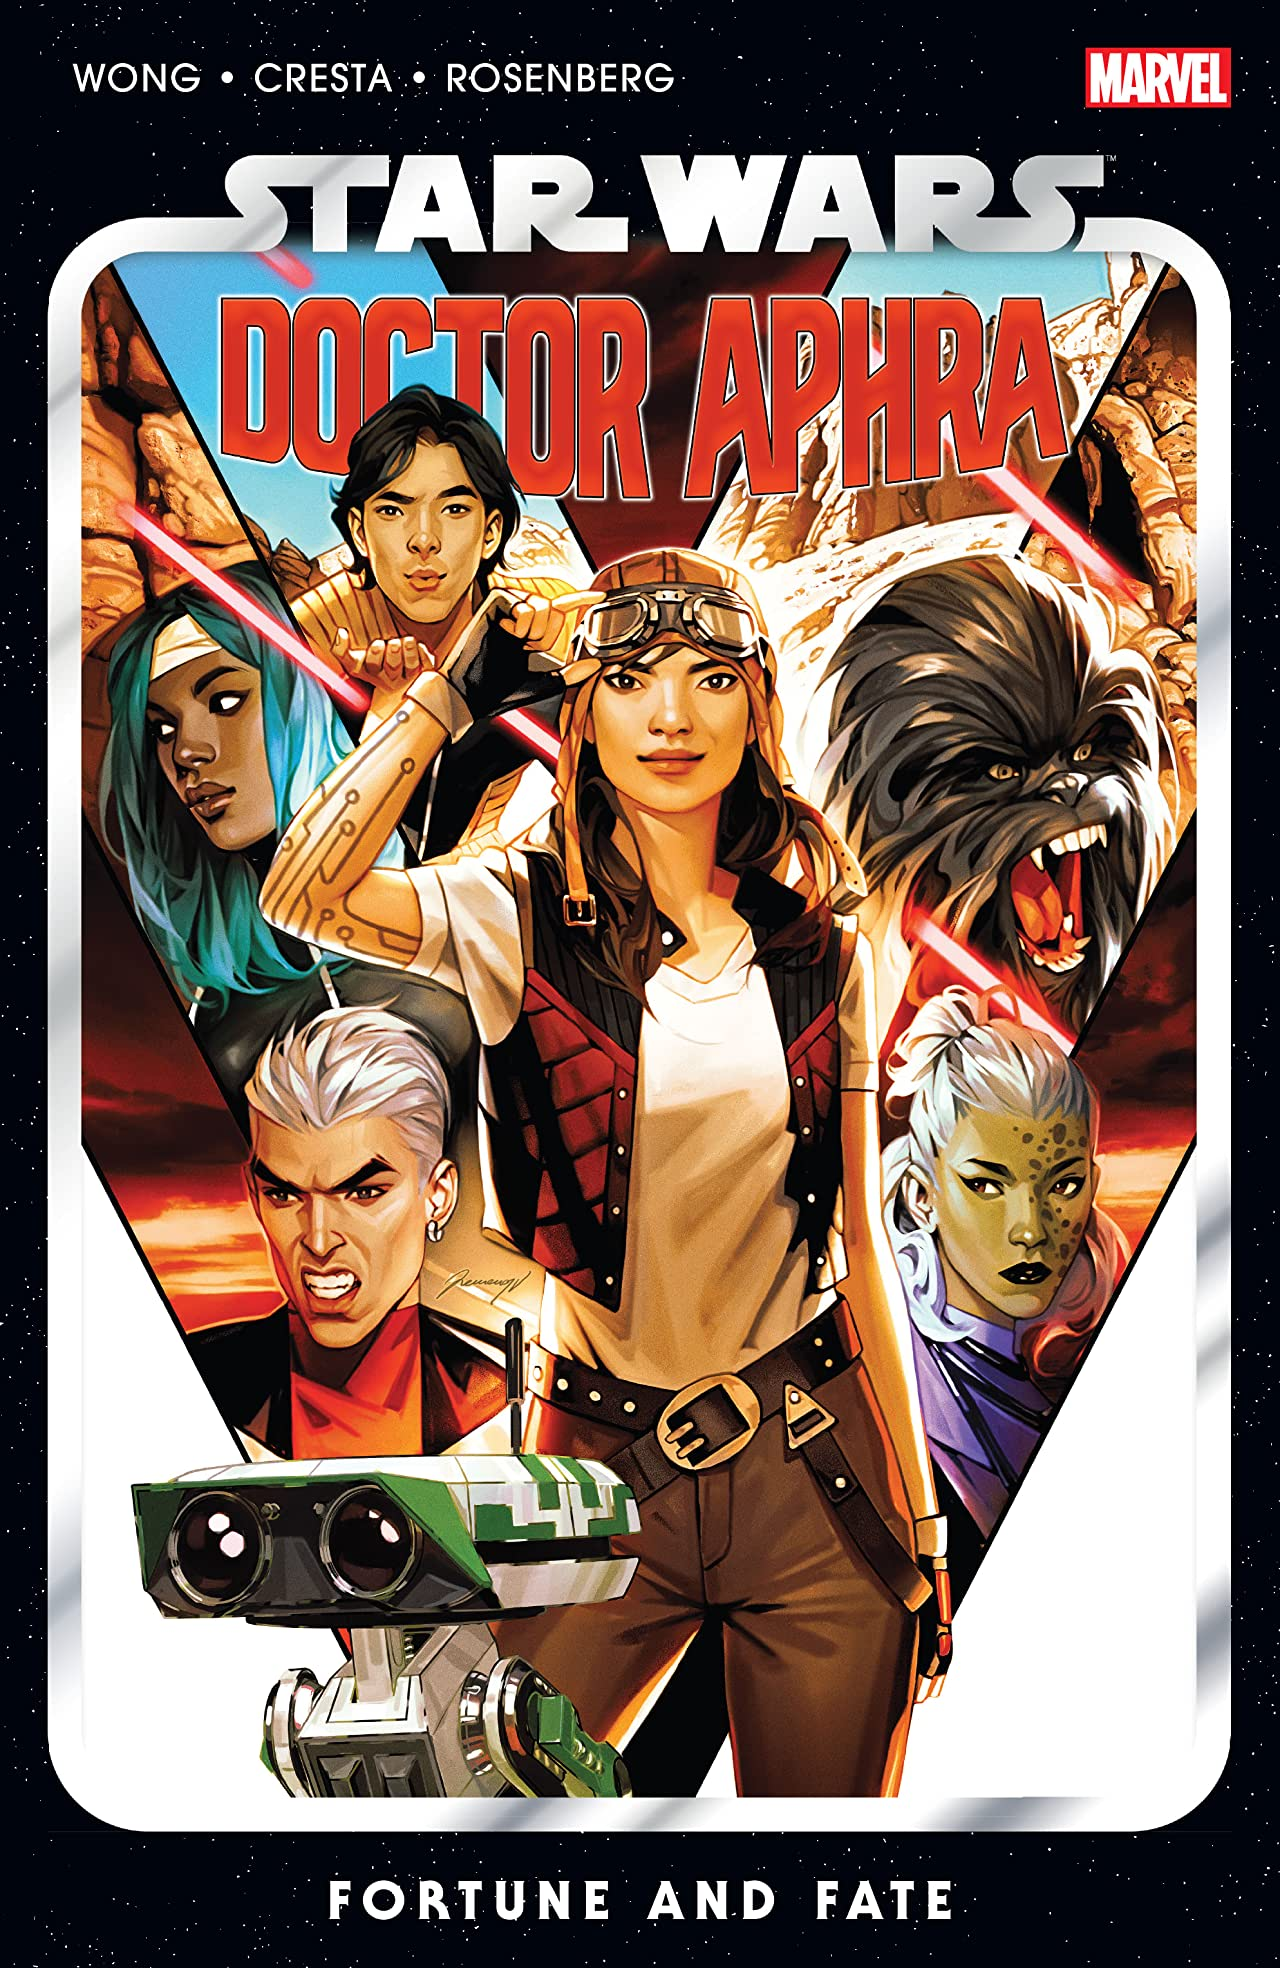 Star Wars: Doctor Aphra Vol. 1: Fortune And Fate (Trade Paperback)